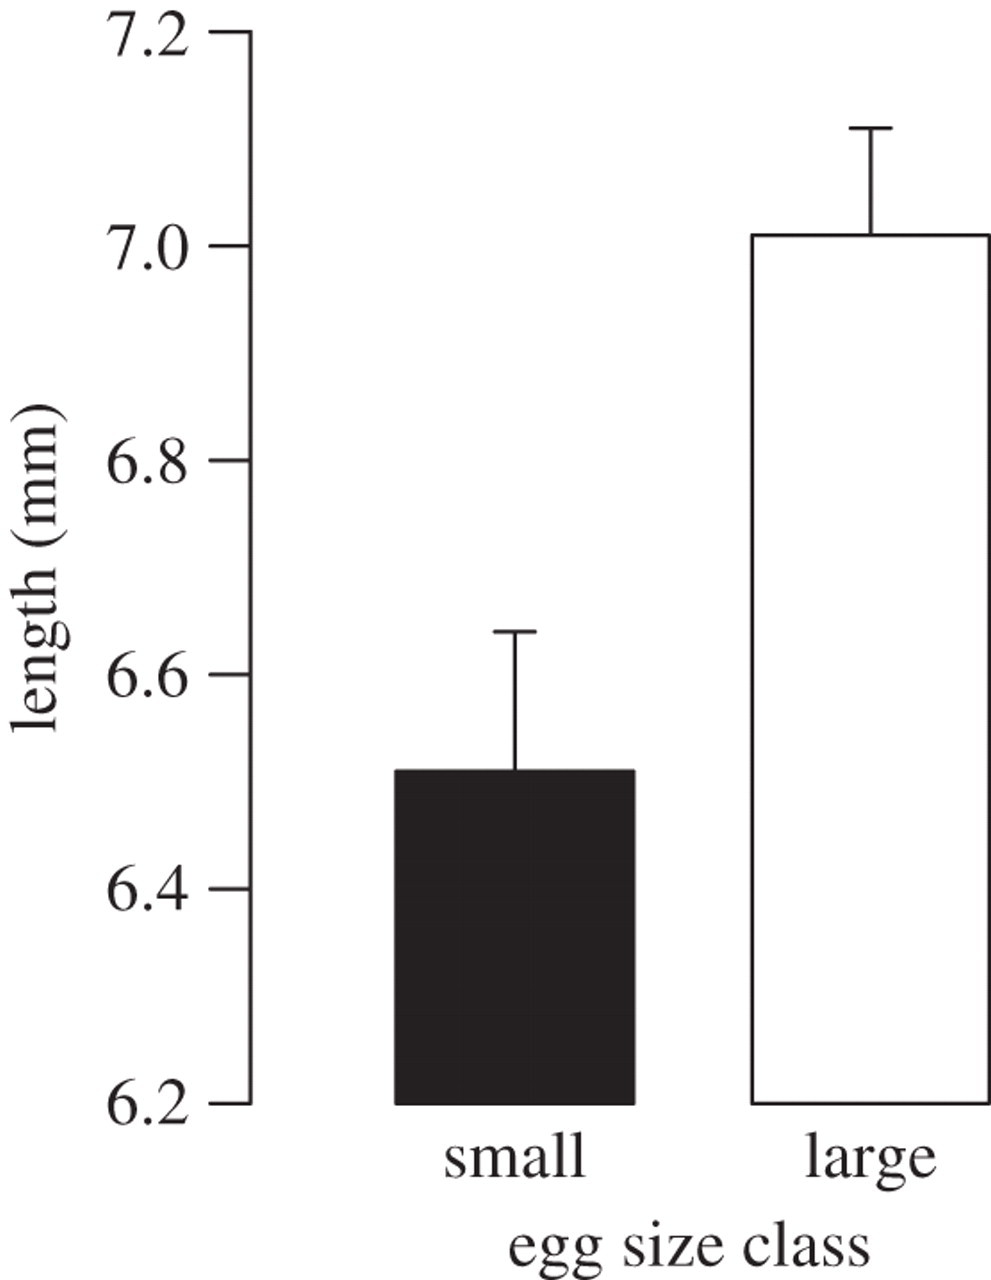 Egg size-dependent expression of growth hormone receptor accompanies